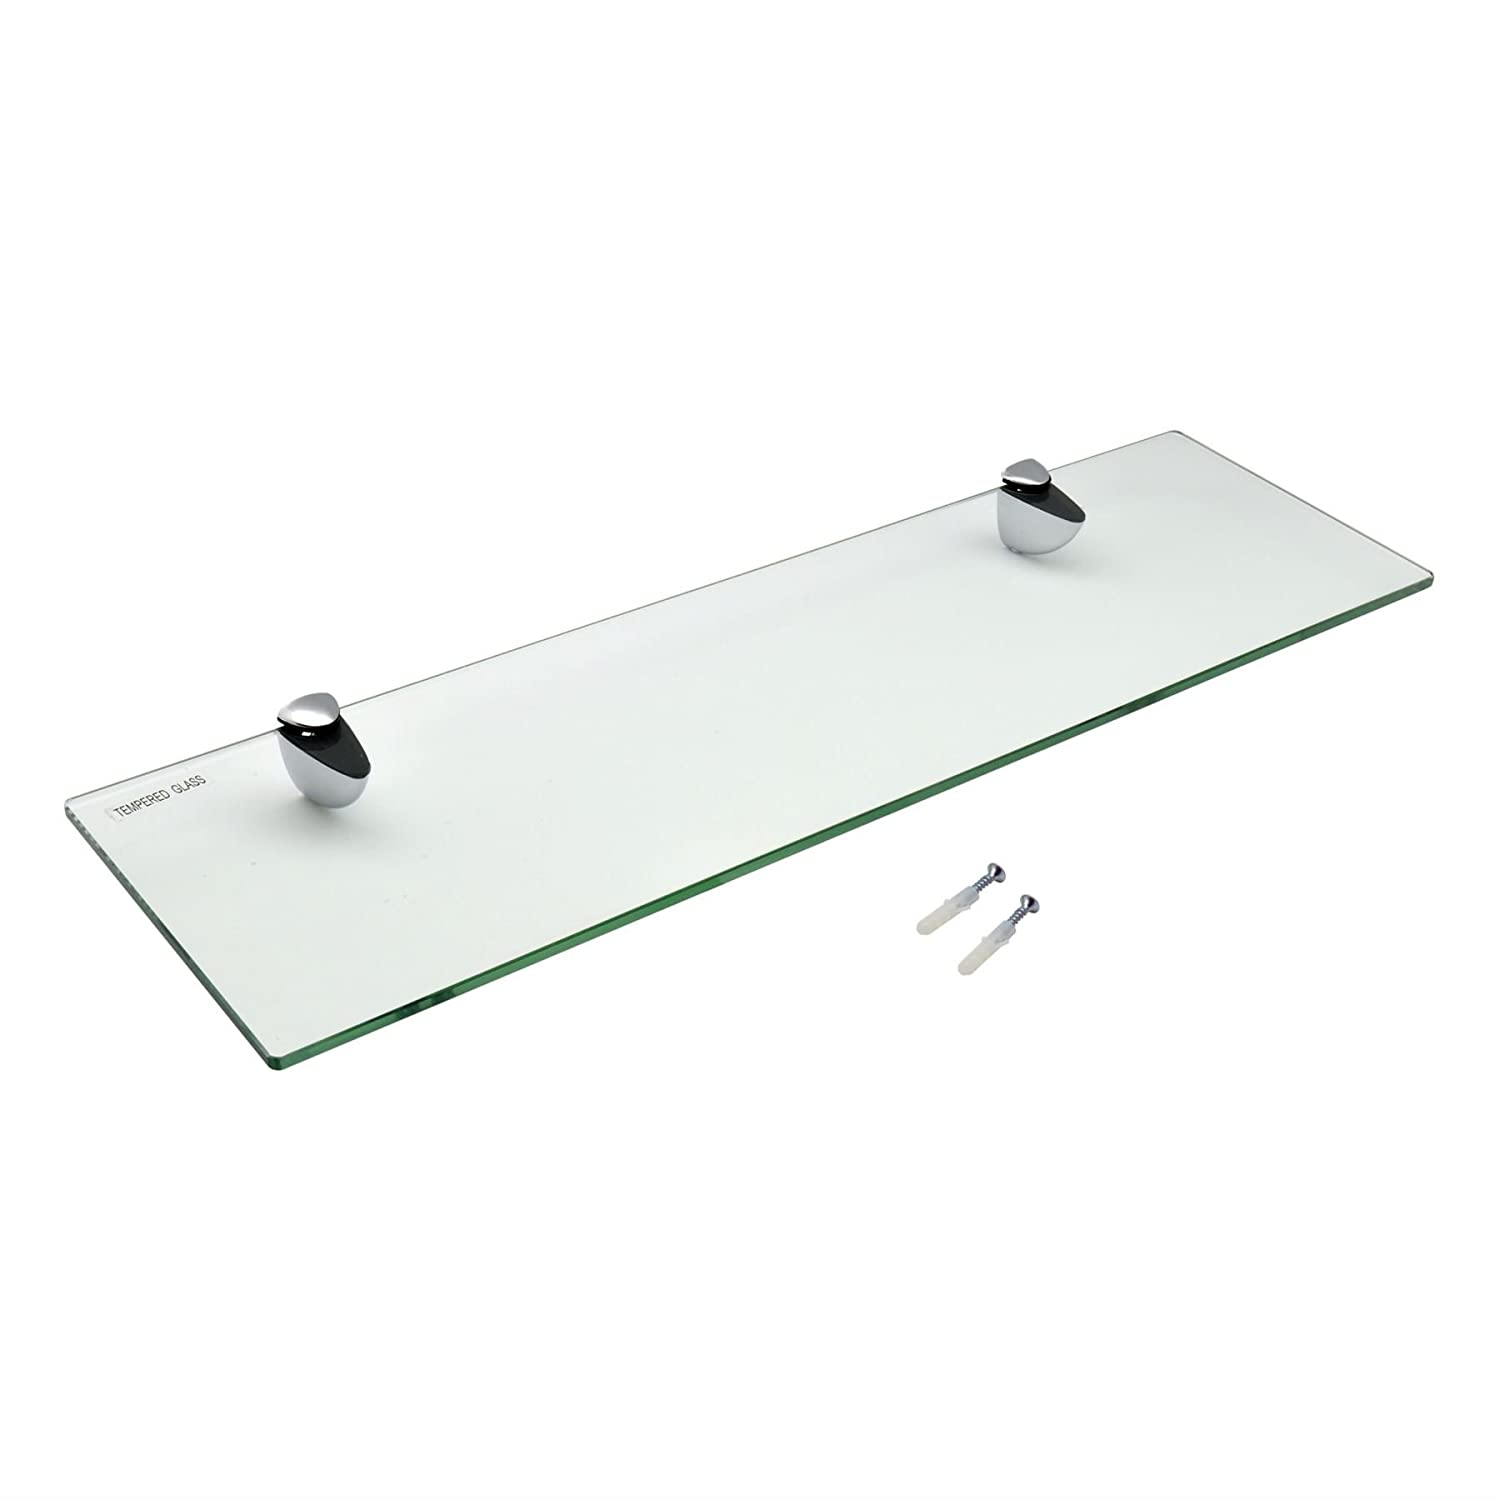 Harbour Housewares Glass Bathroom Shelf With Chrome Fixings - Tempered Glass - 50cm